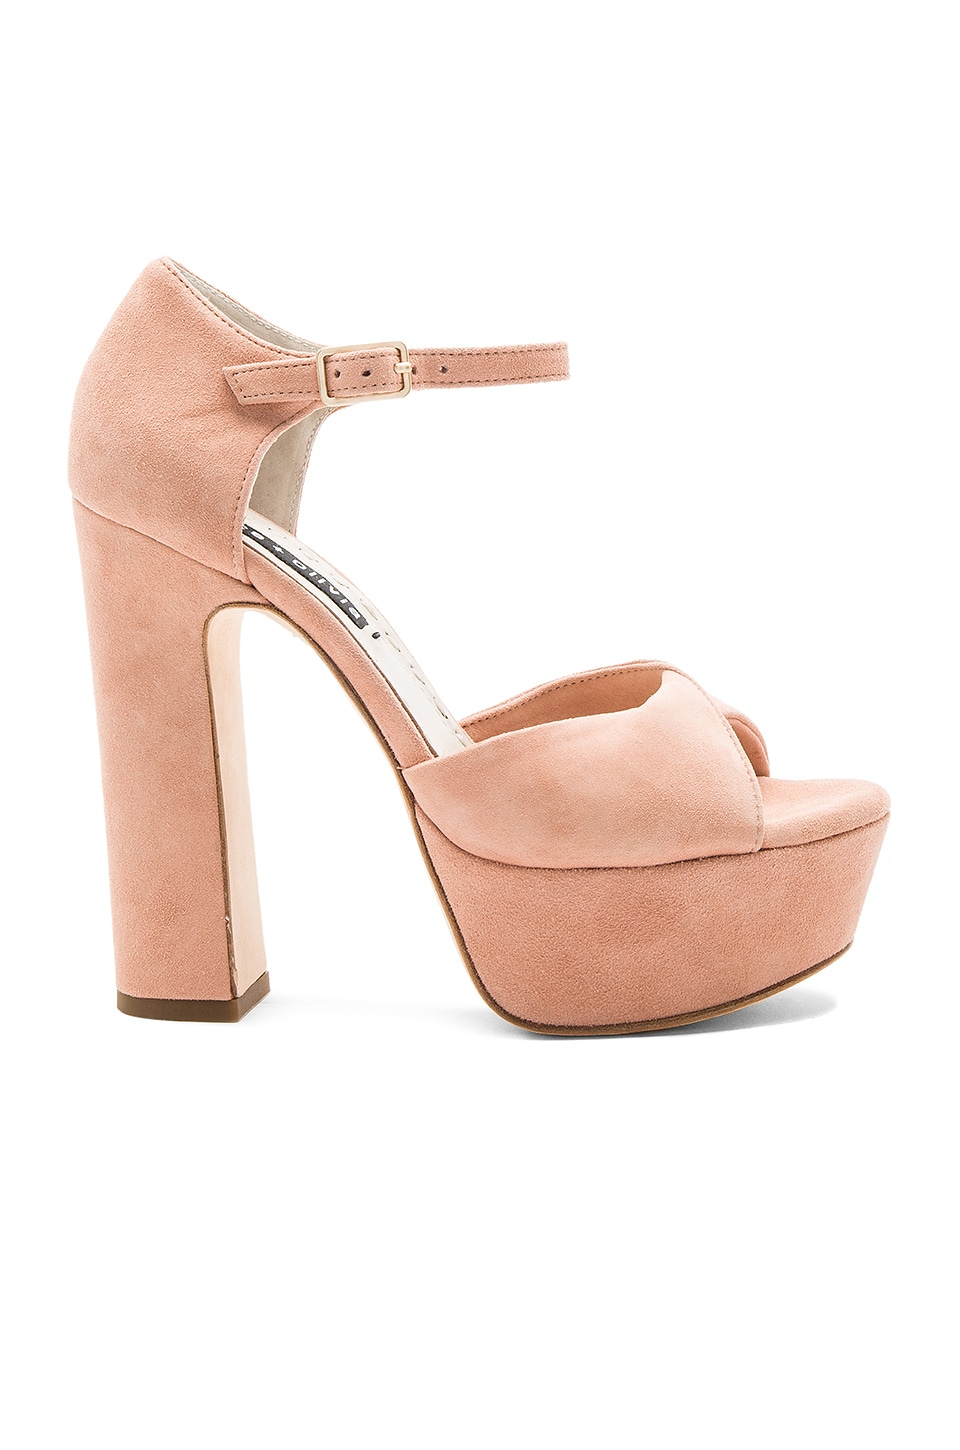 Alice + Olivia Layla Platform in Dusty Rose